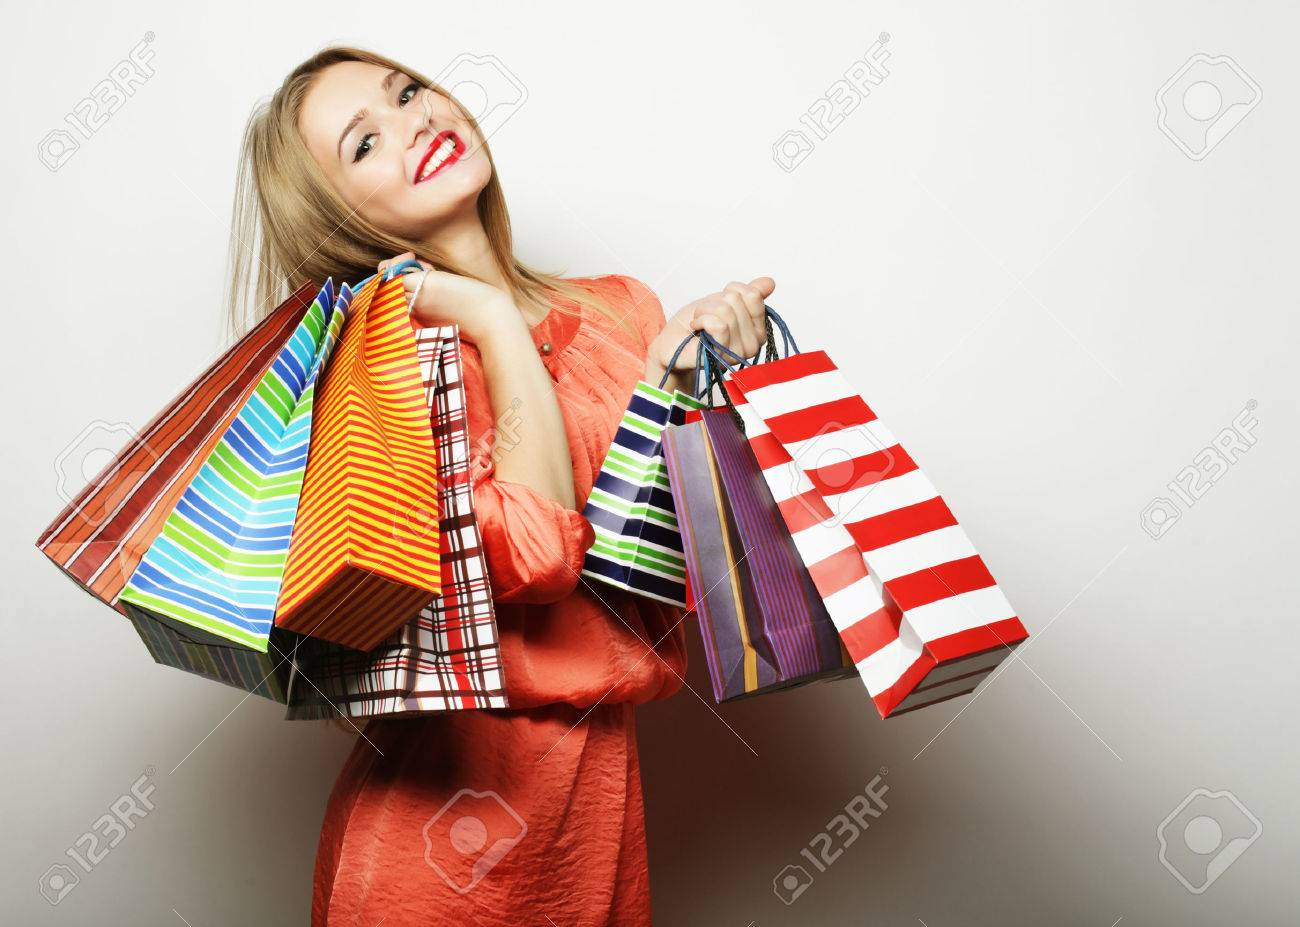 Portrait of young happy smiling woman with shopping bags, over white background - 50259224